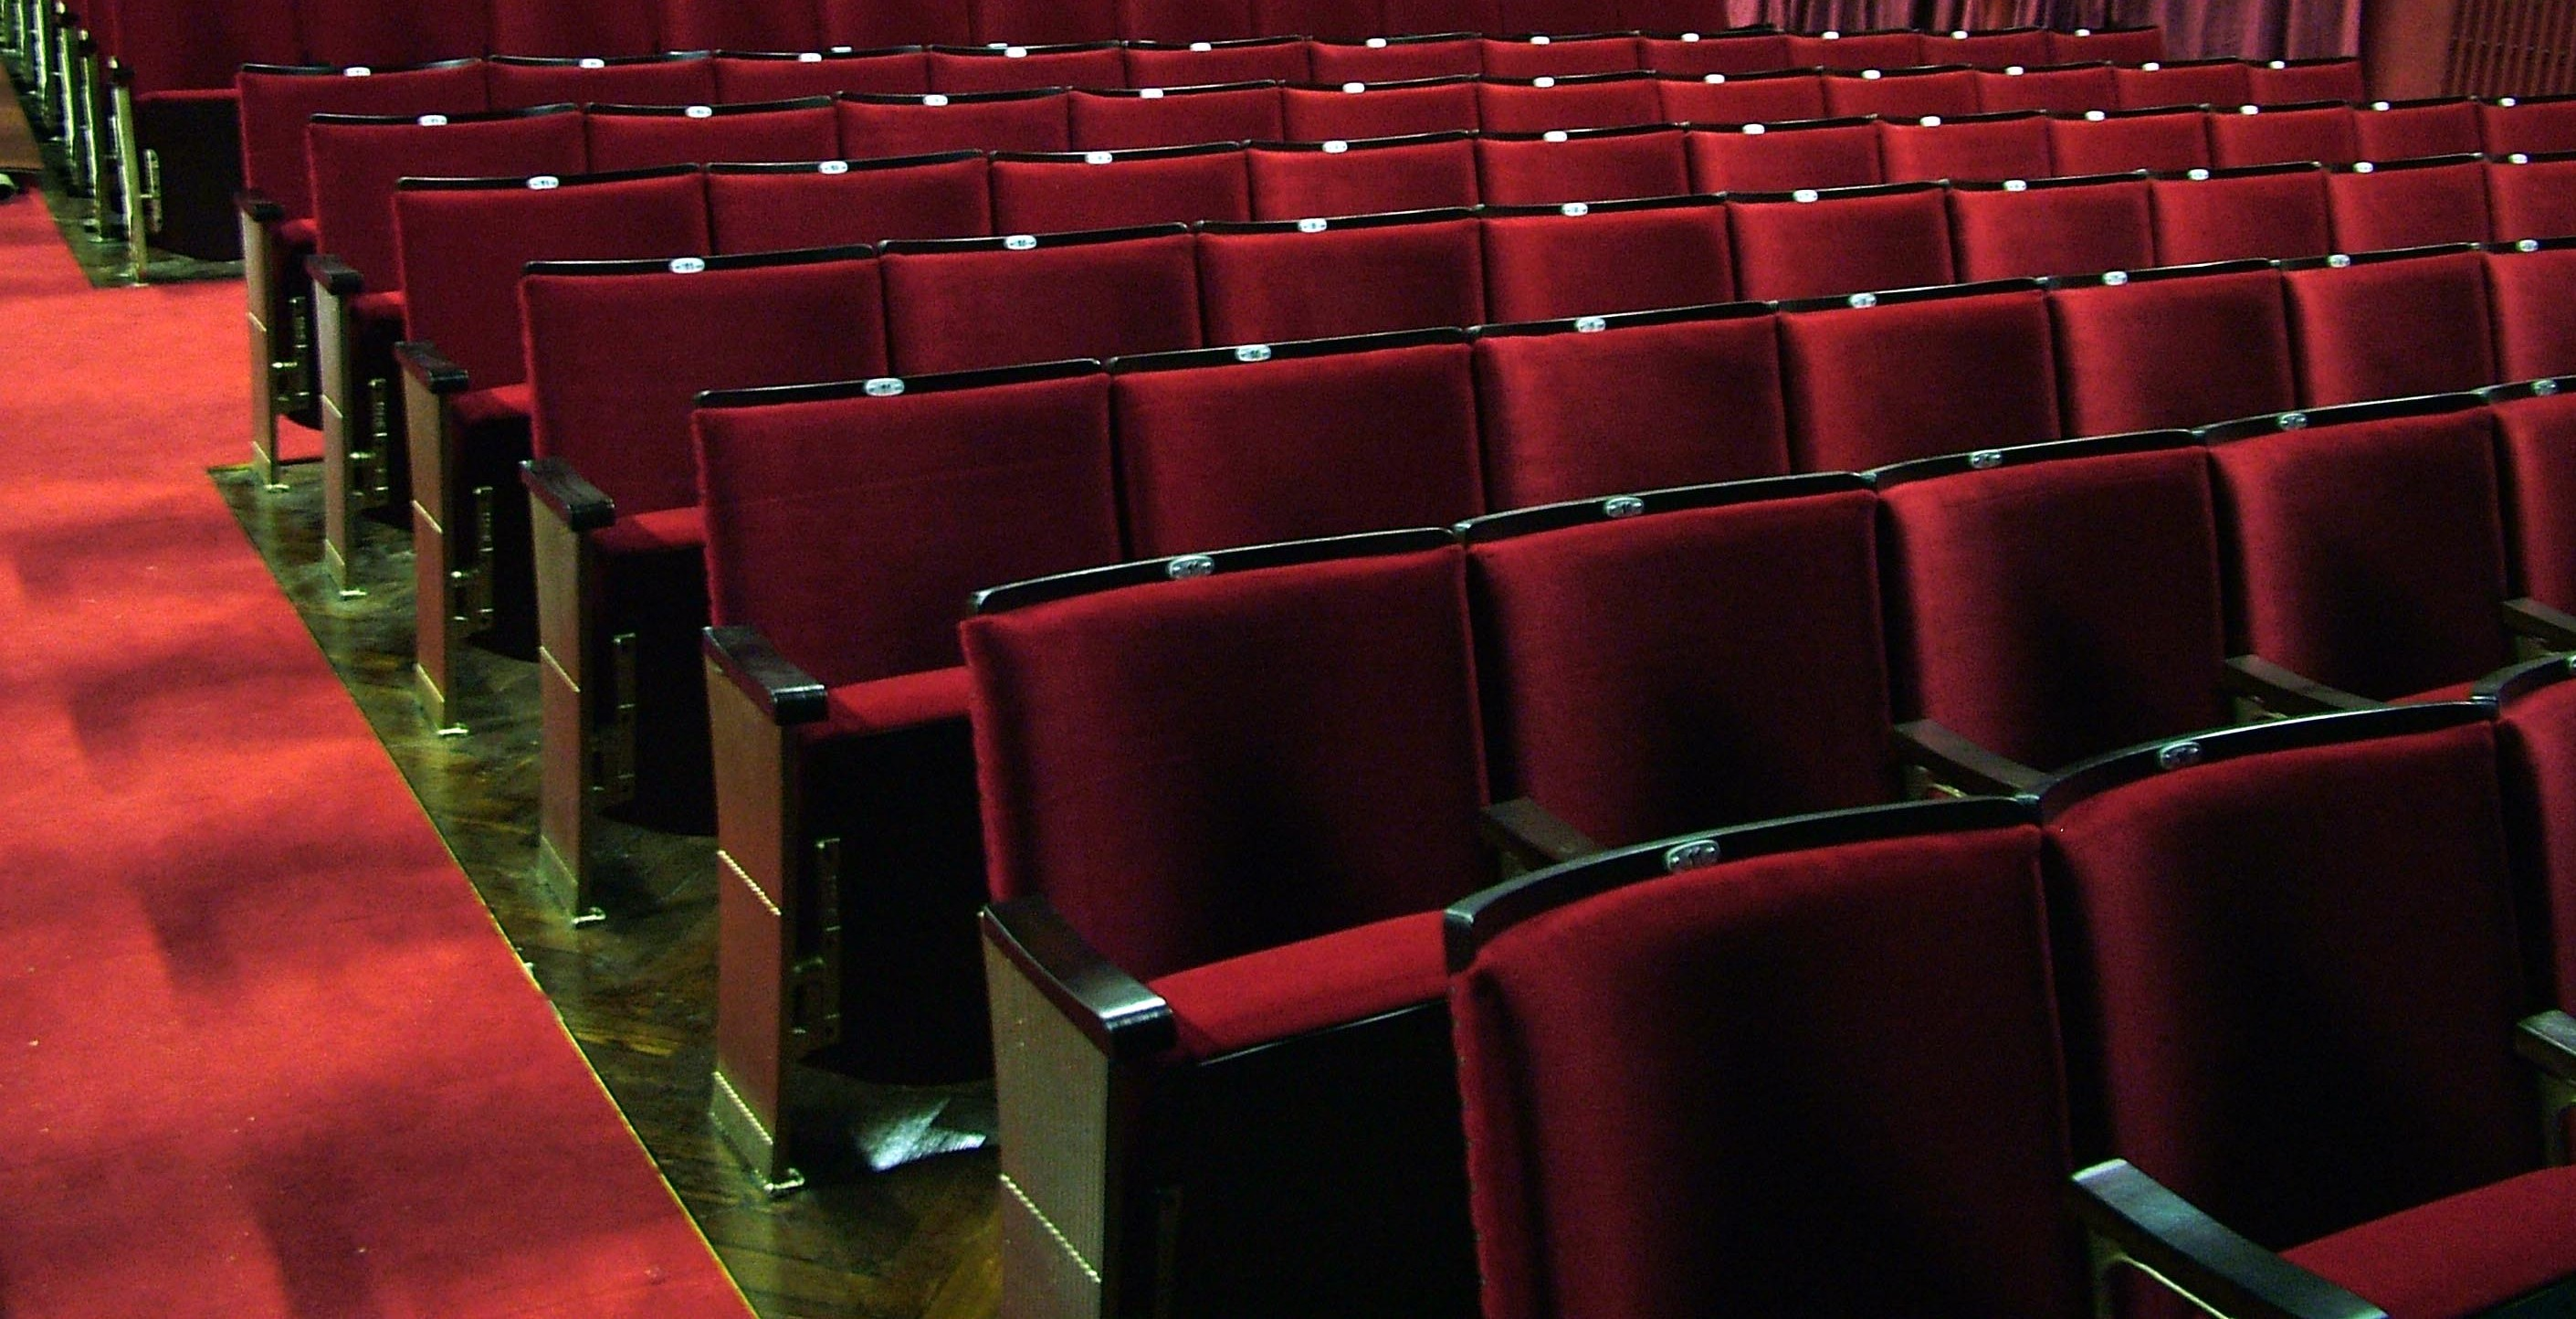 Traditional fixed seating in a theatre auditorium following reupholstery in red velvet fabric